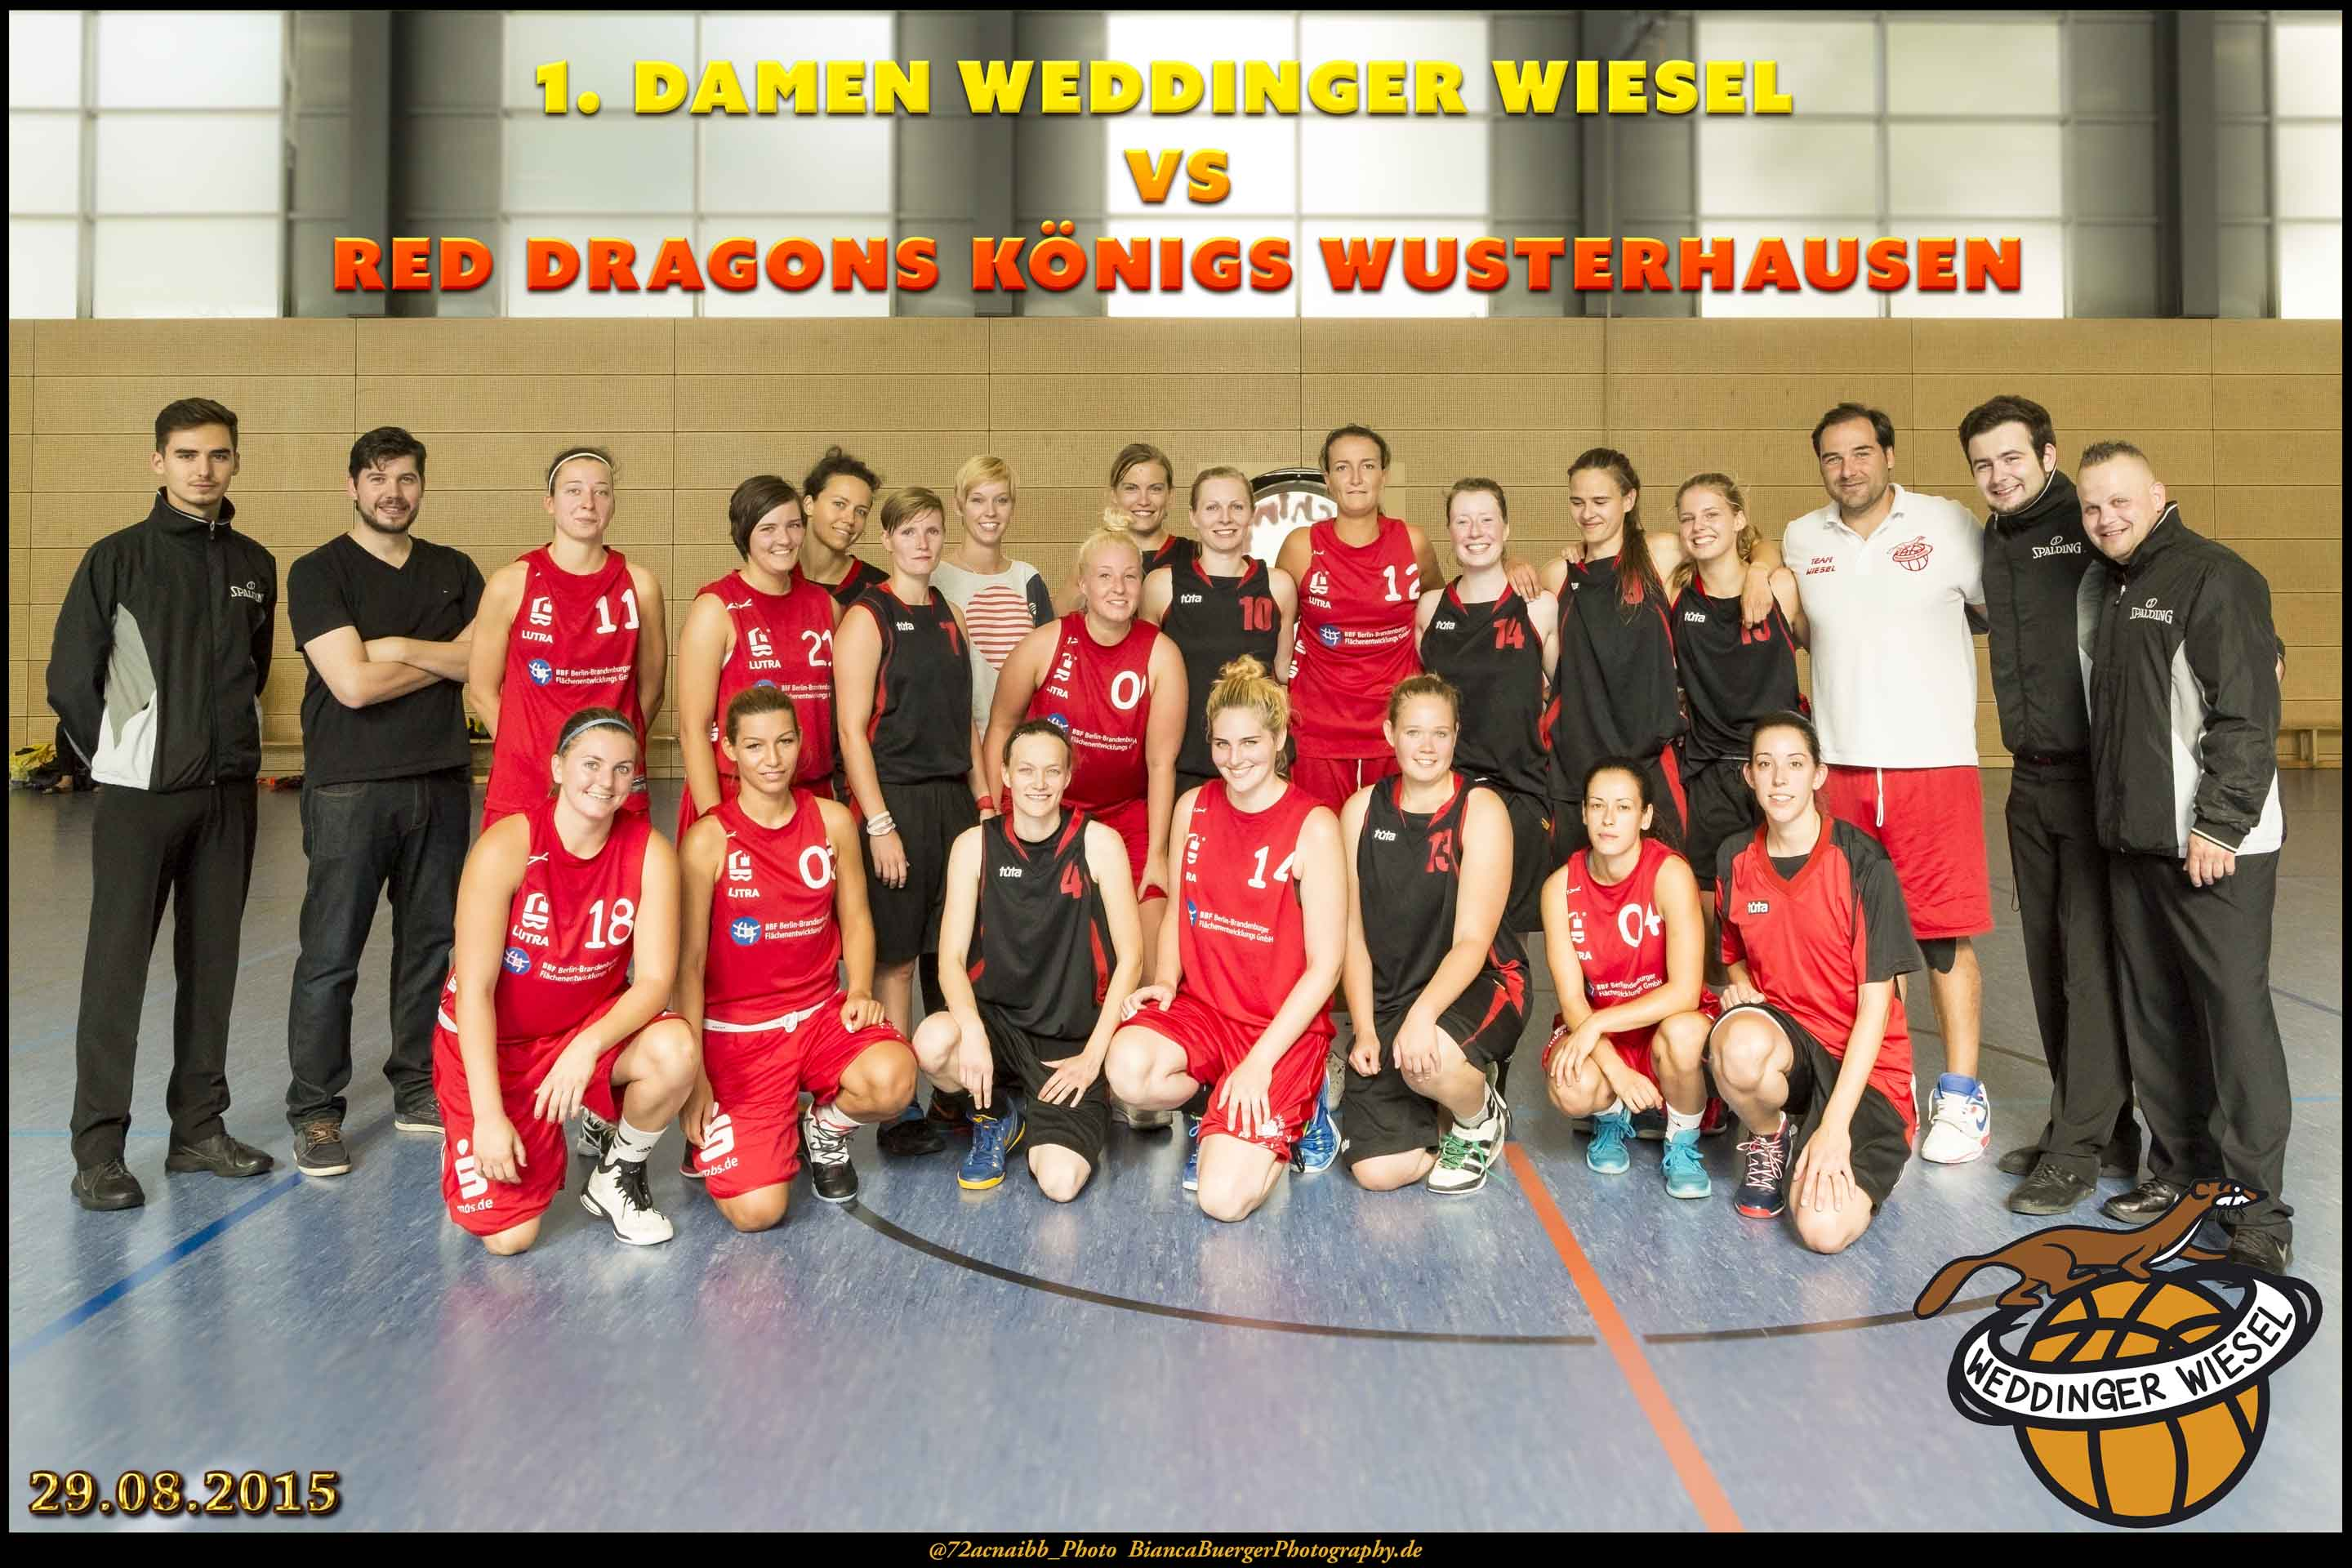 Testspiel - 1. Damen Weddinger Wiesel vs Red Dragons Königs Wusterhausen